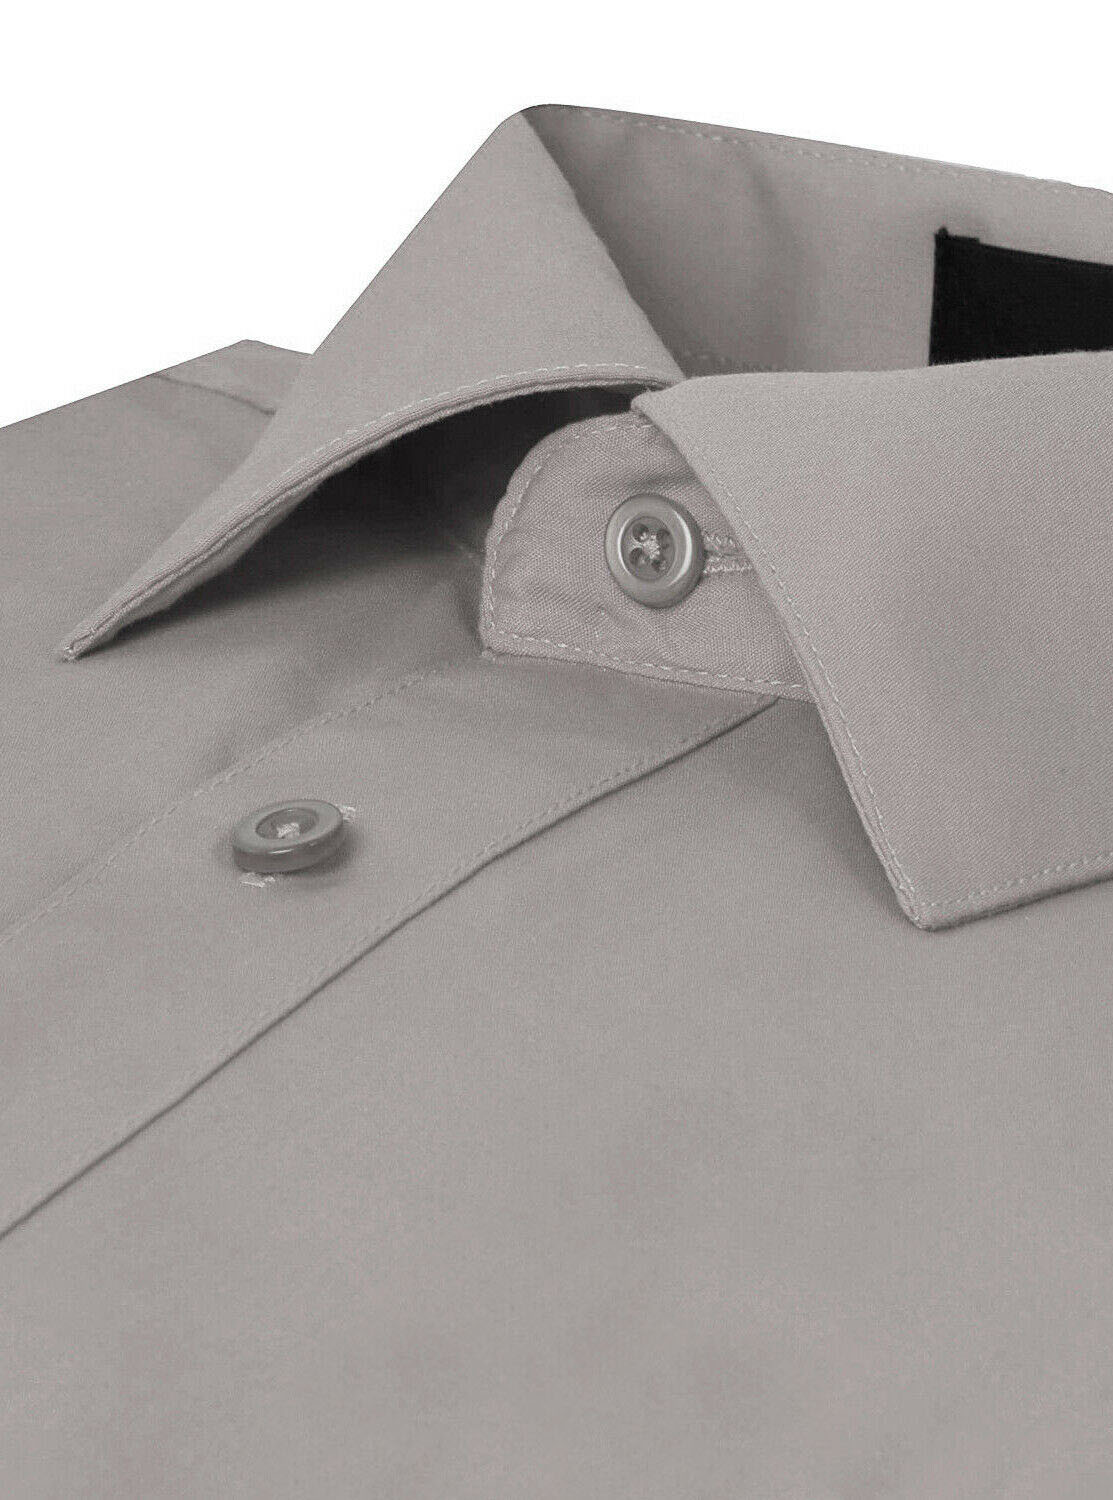 Omega-Italy-Men-039-s-Premium-Slim-Fit-Button-Up-Long-Sleeve-Solid-Color-Dress-Shirt thumbnail 45